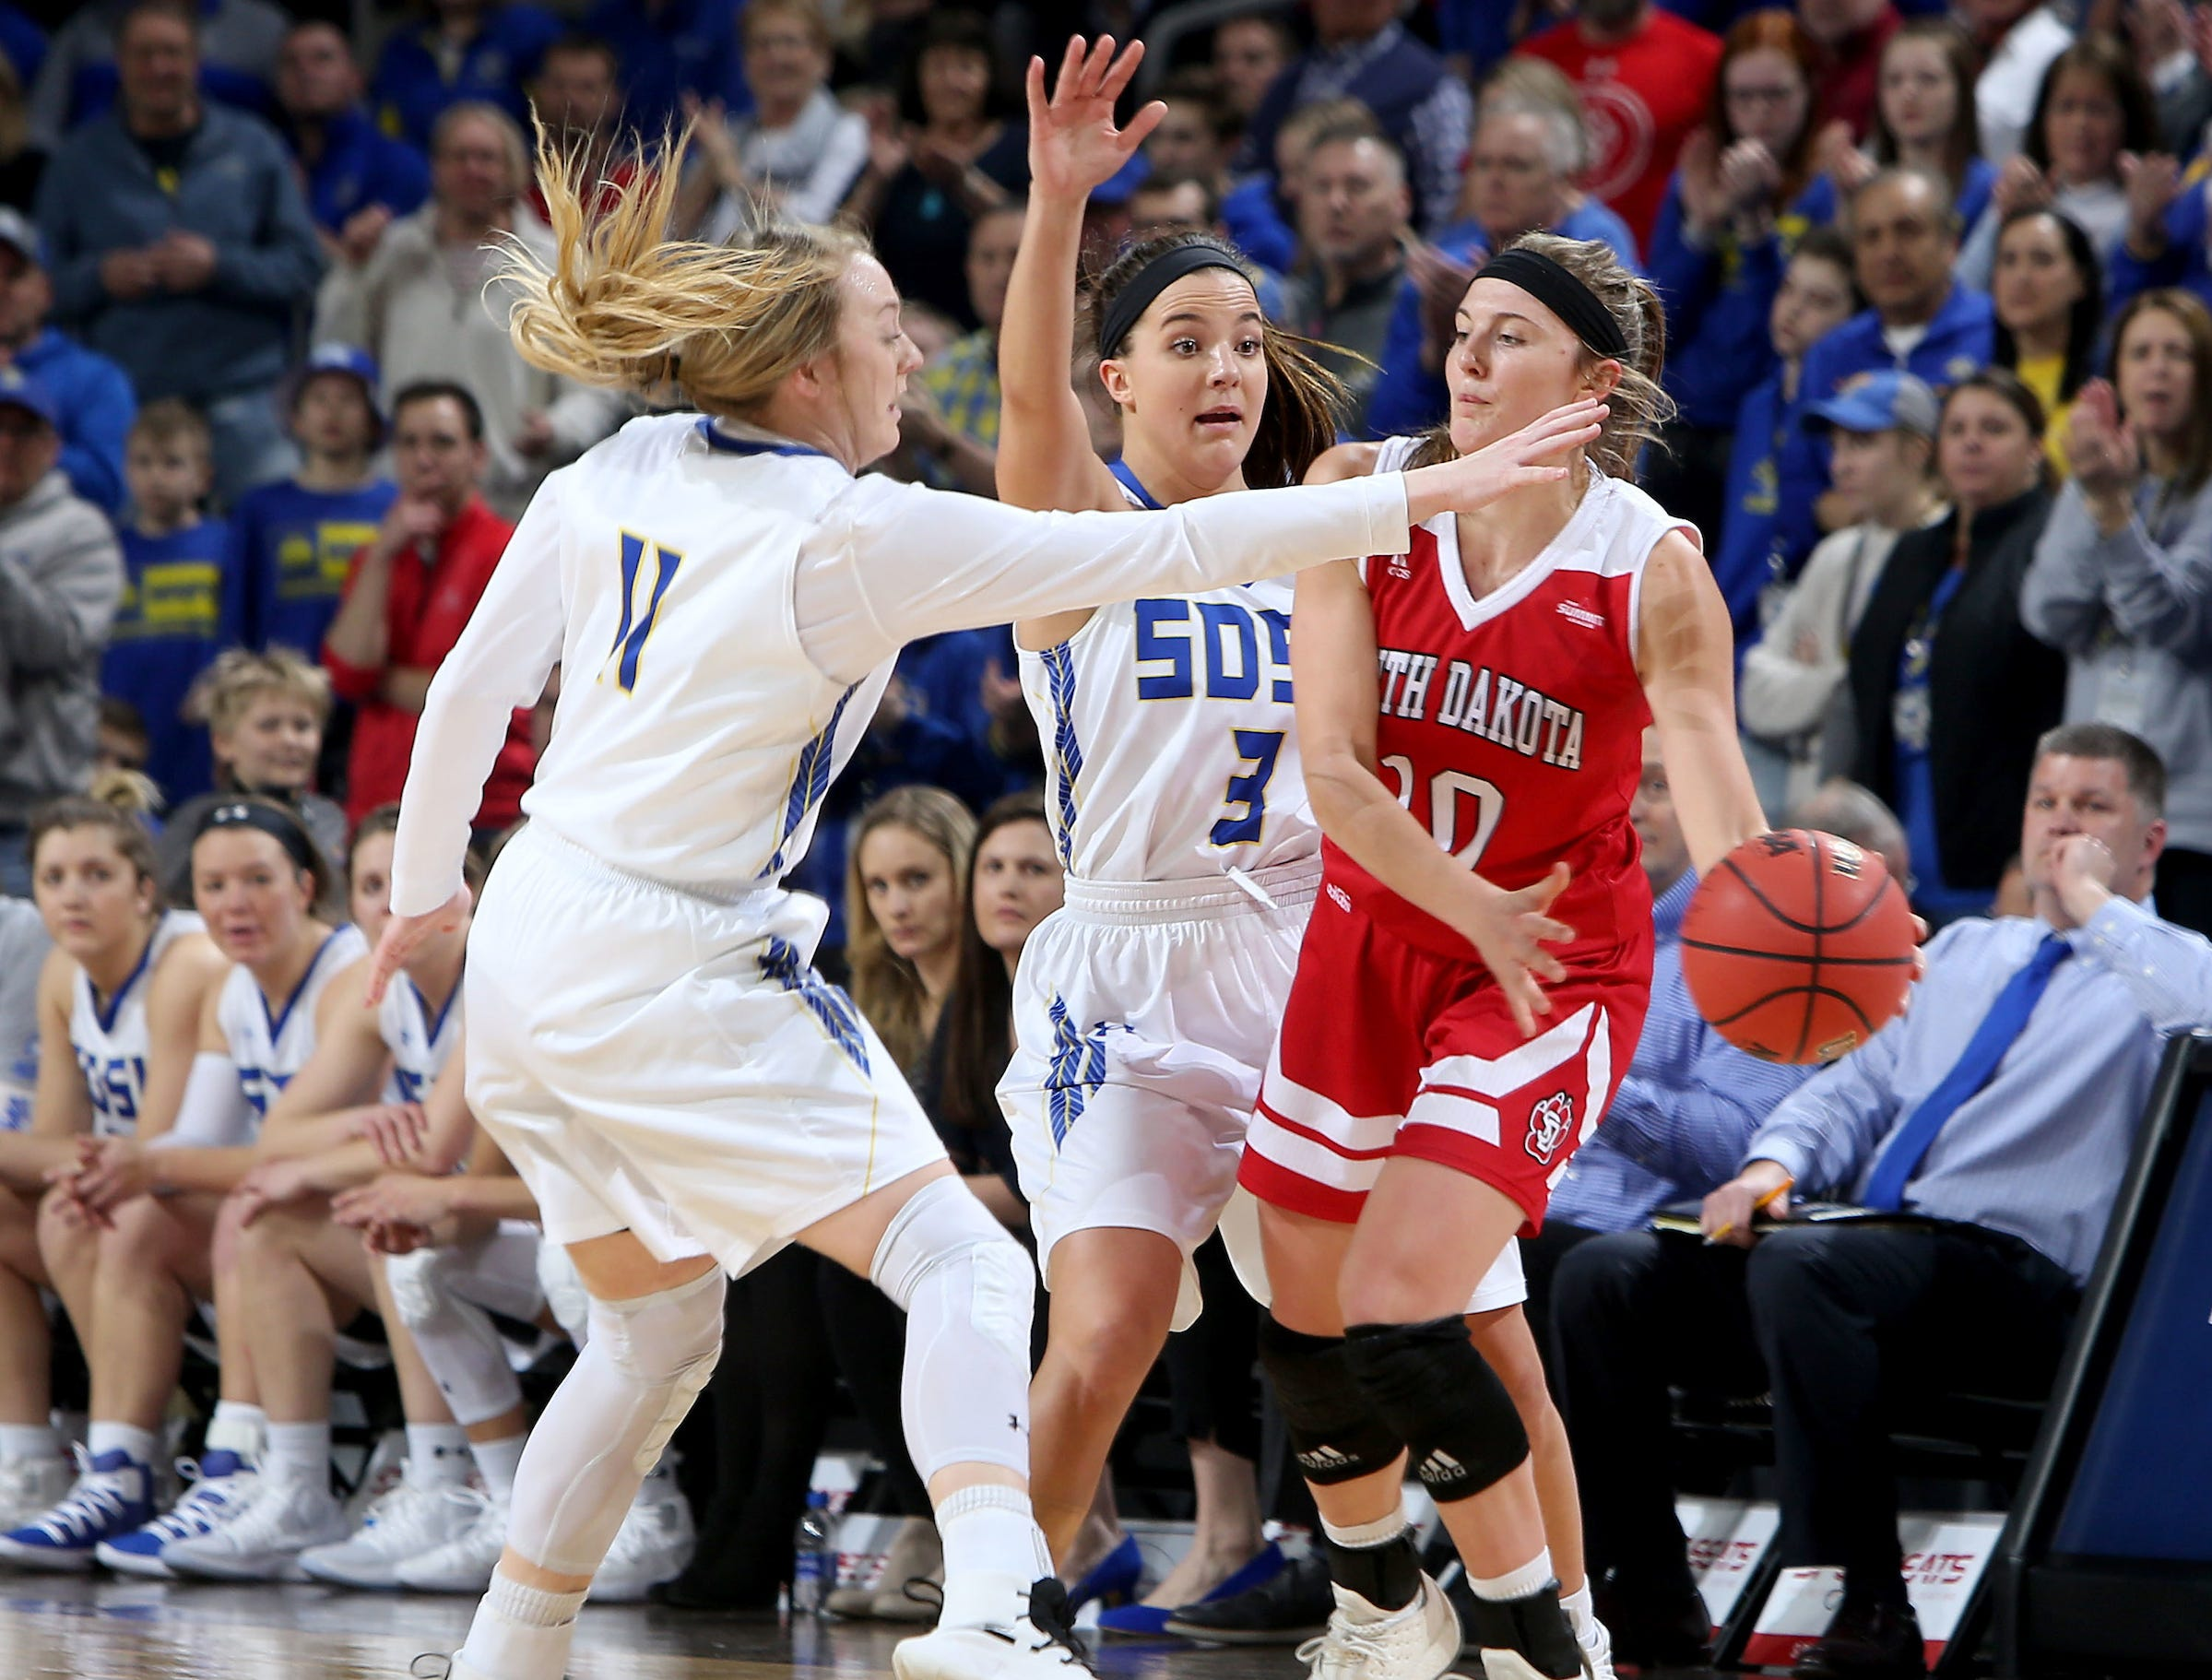 SIOUX FALLS, SD - MARCH 11: Allison Arens #10 from South Dakota passes out of a trap comprised of Madison Guebert #11 and Lindsey Theuninck #3 of South Dakota State at the 2019 Summit League Basketball Tournament at the Denny Sanford Premier Center in Sioux Falls. (Photo by Dave Eggen/Inertia)